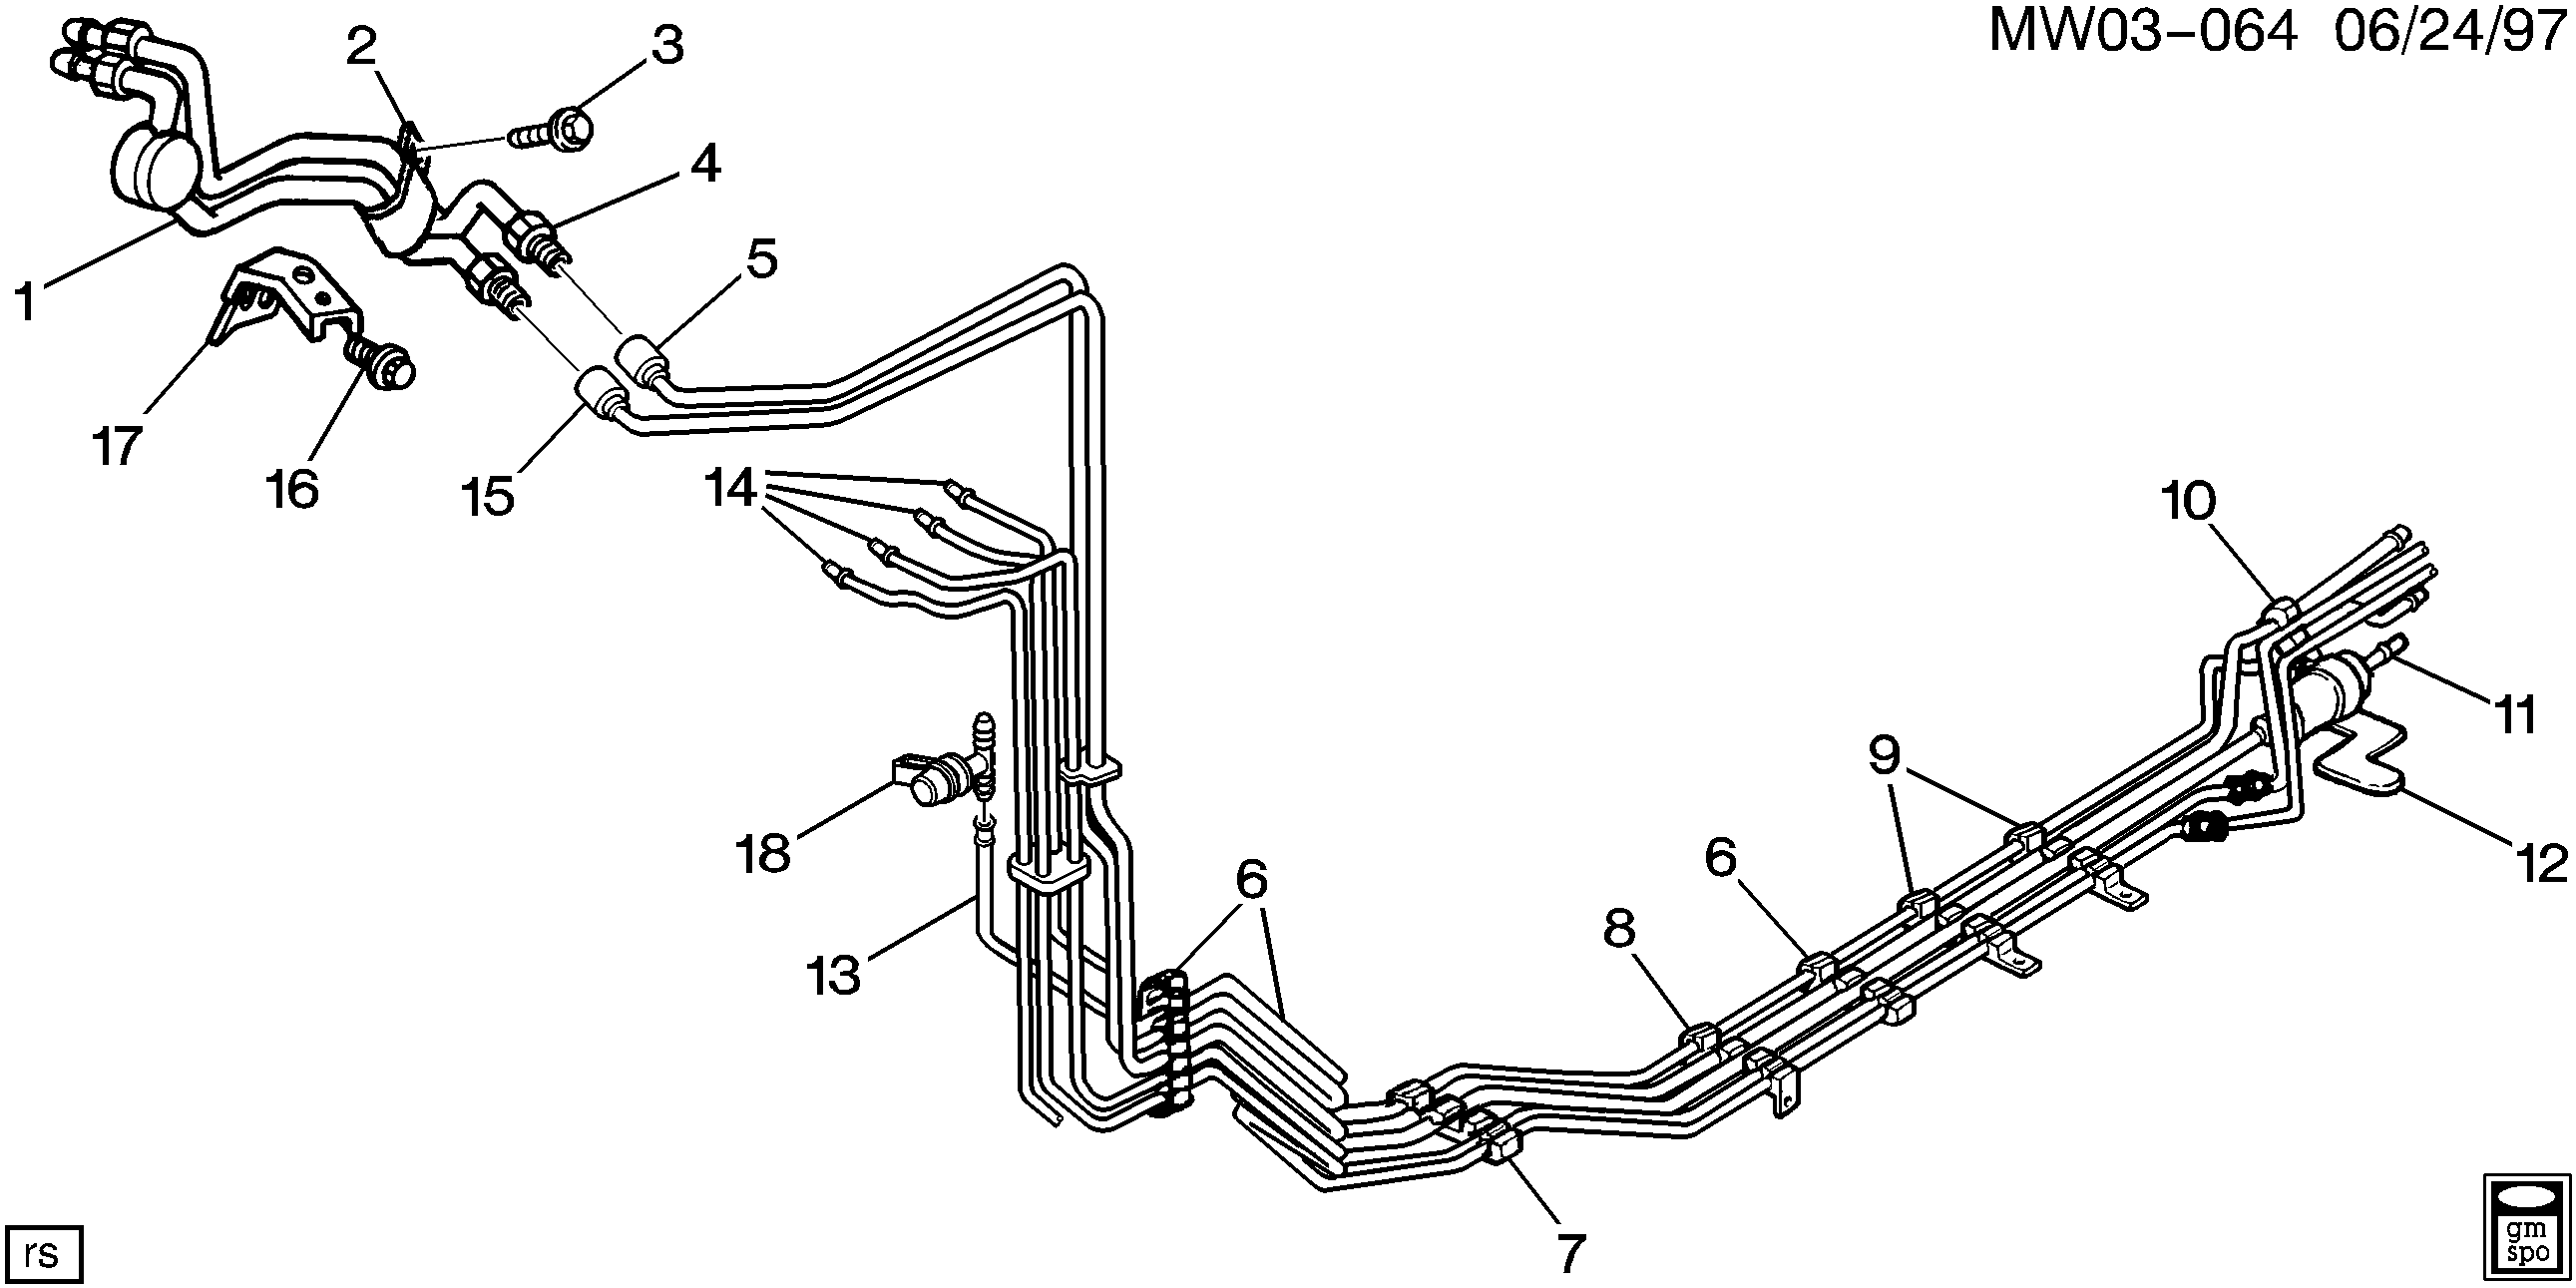 1997-1999 W FUEL SUPPLY SYSTEM-FUEL LINES (L82/3.1M)